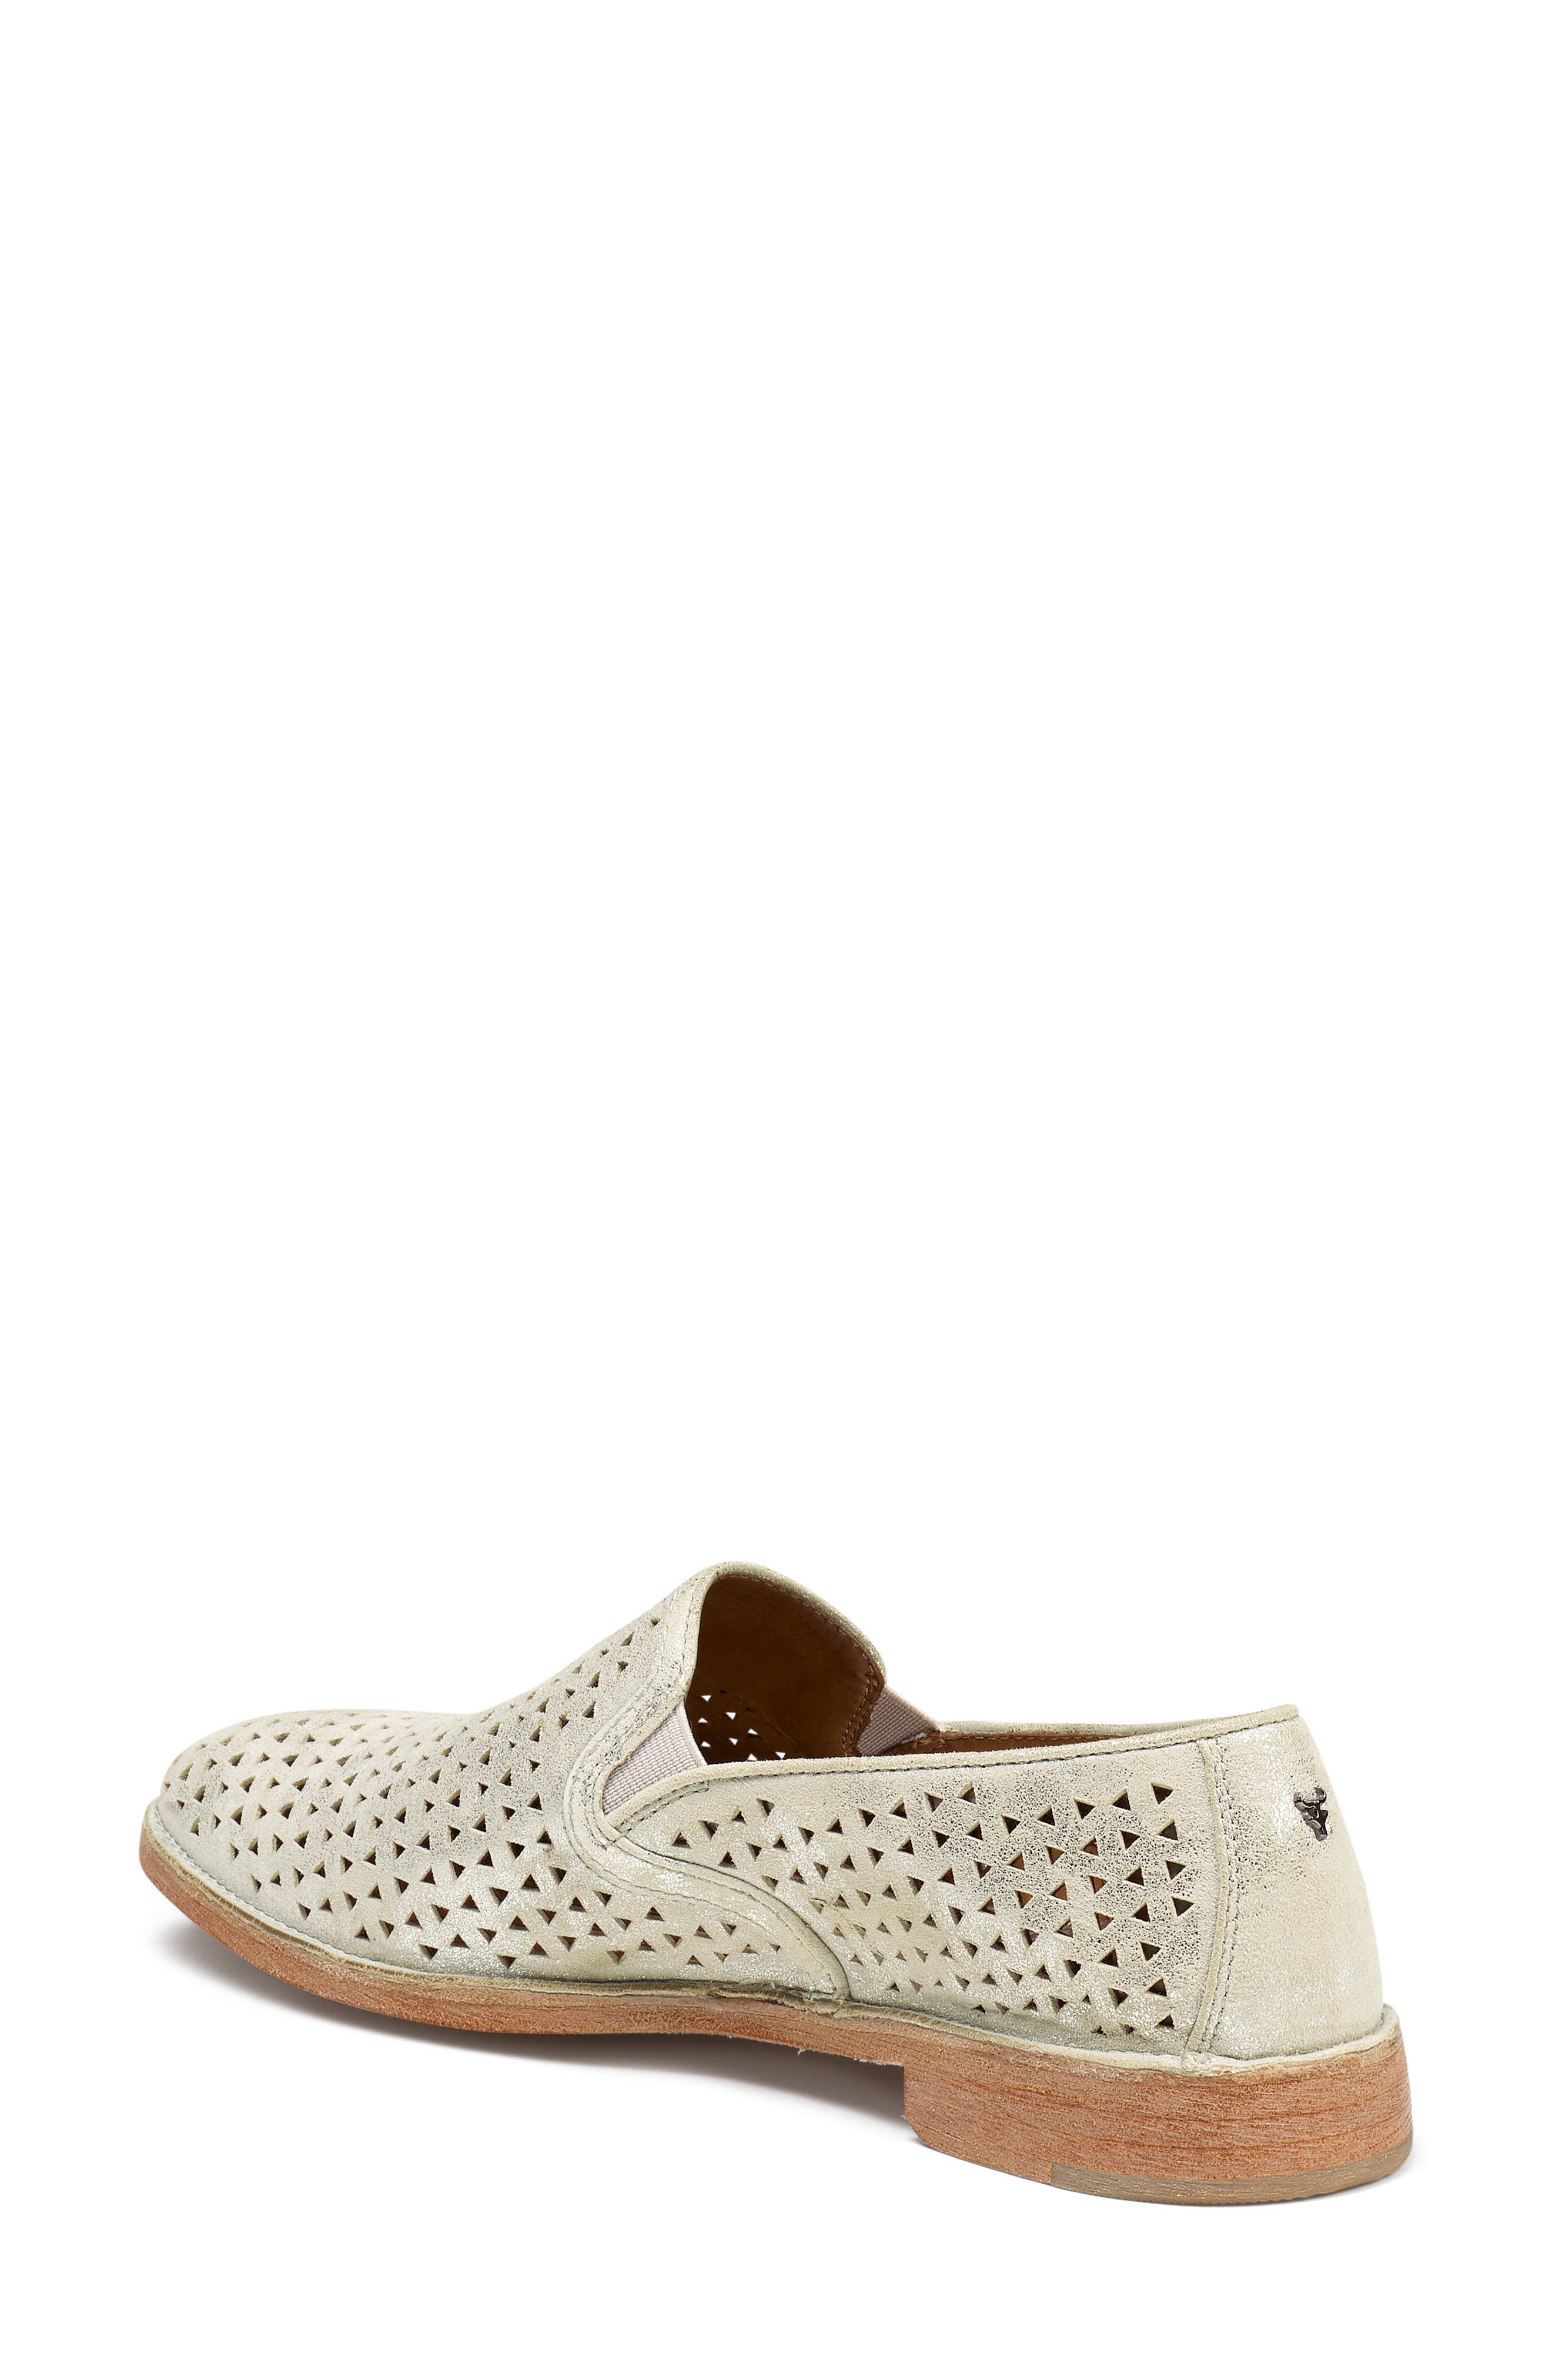 TRASK, Ali Perforated Loafer, Alternate thumbnail 2, color, IVORY METALLIC SUEDE